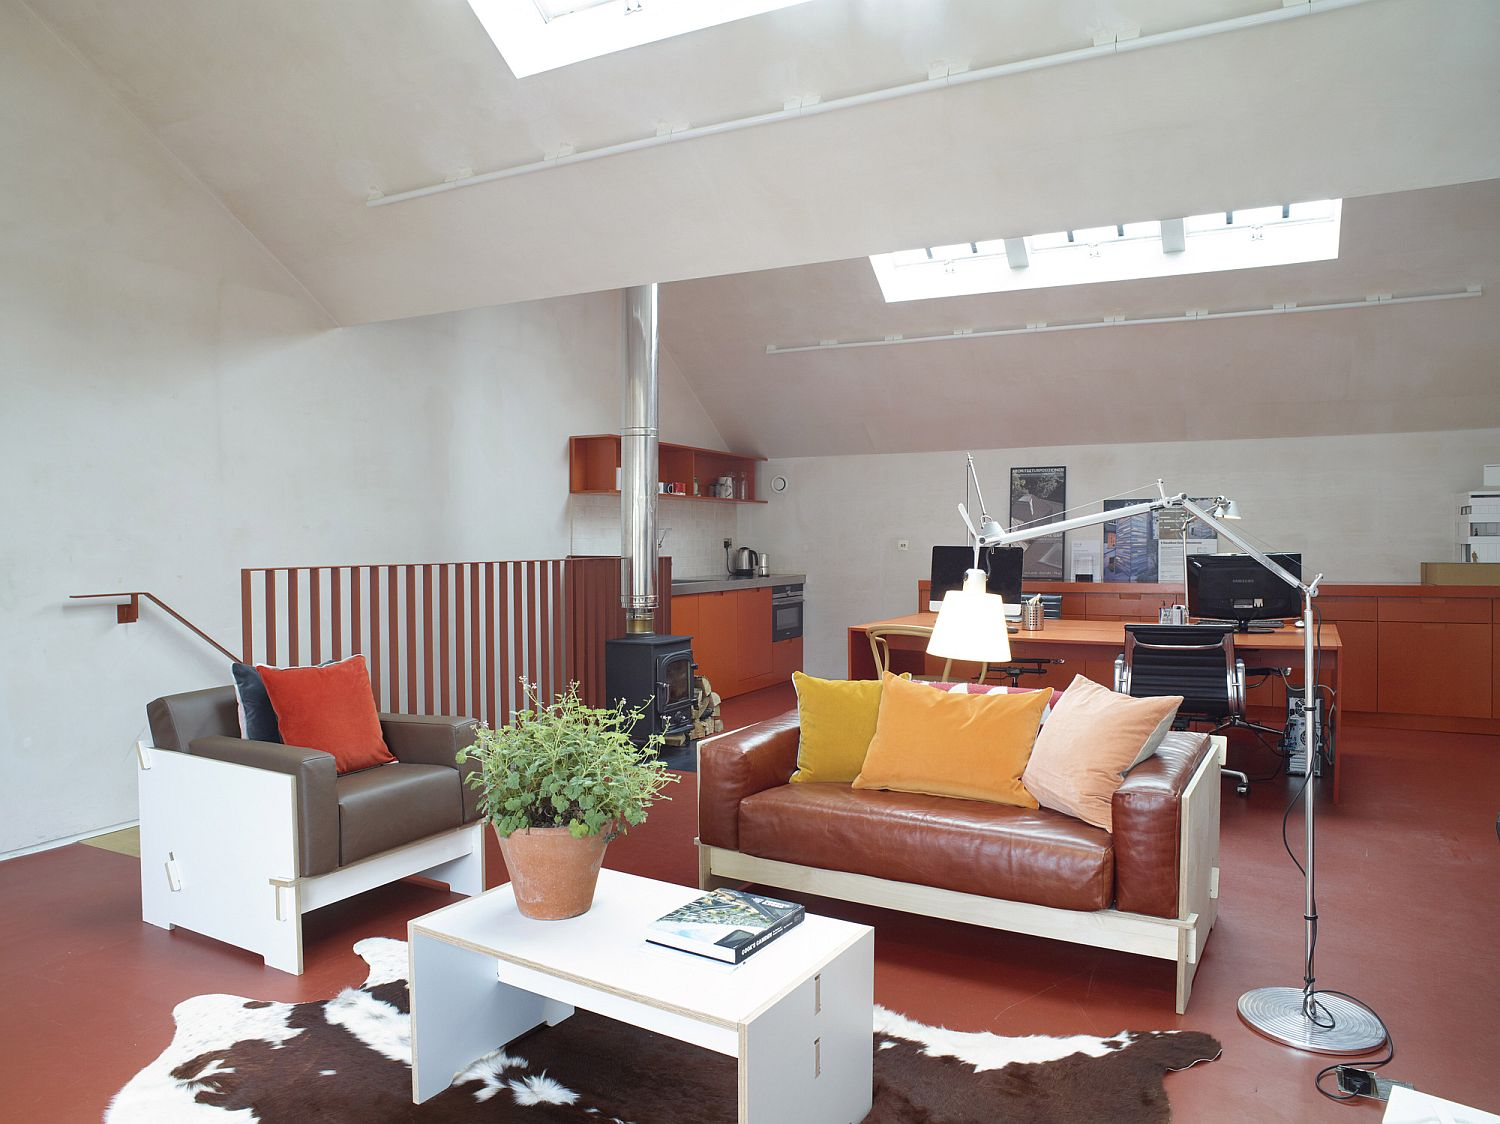 Light-filled living area in bright orange and white